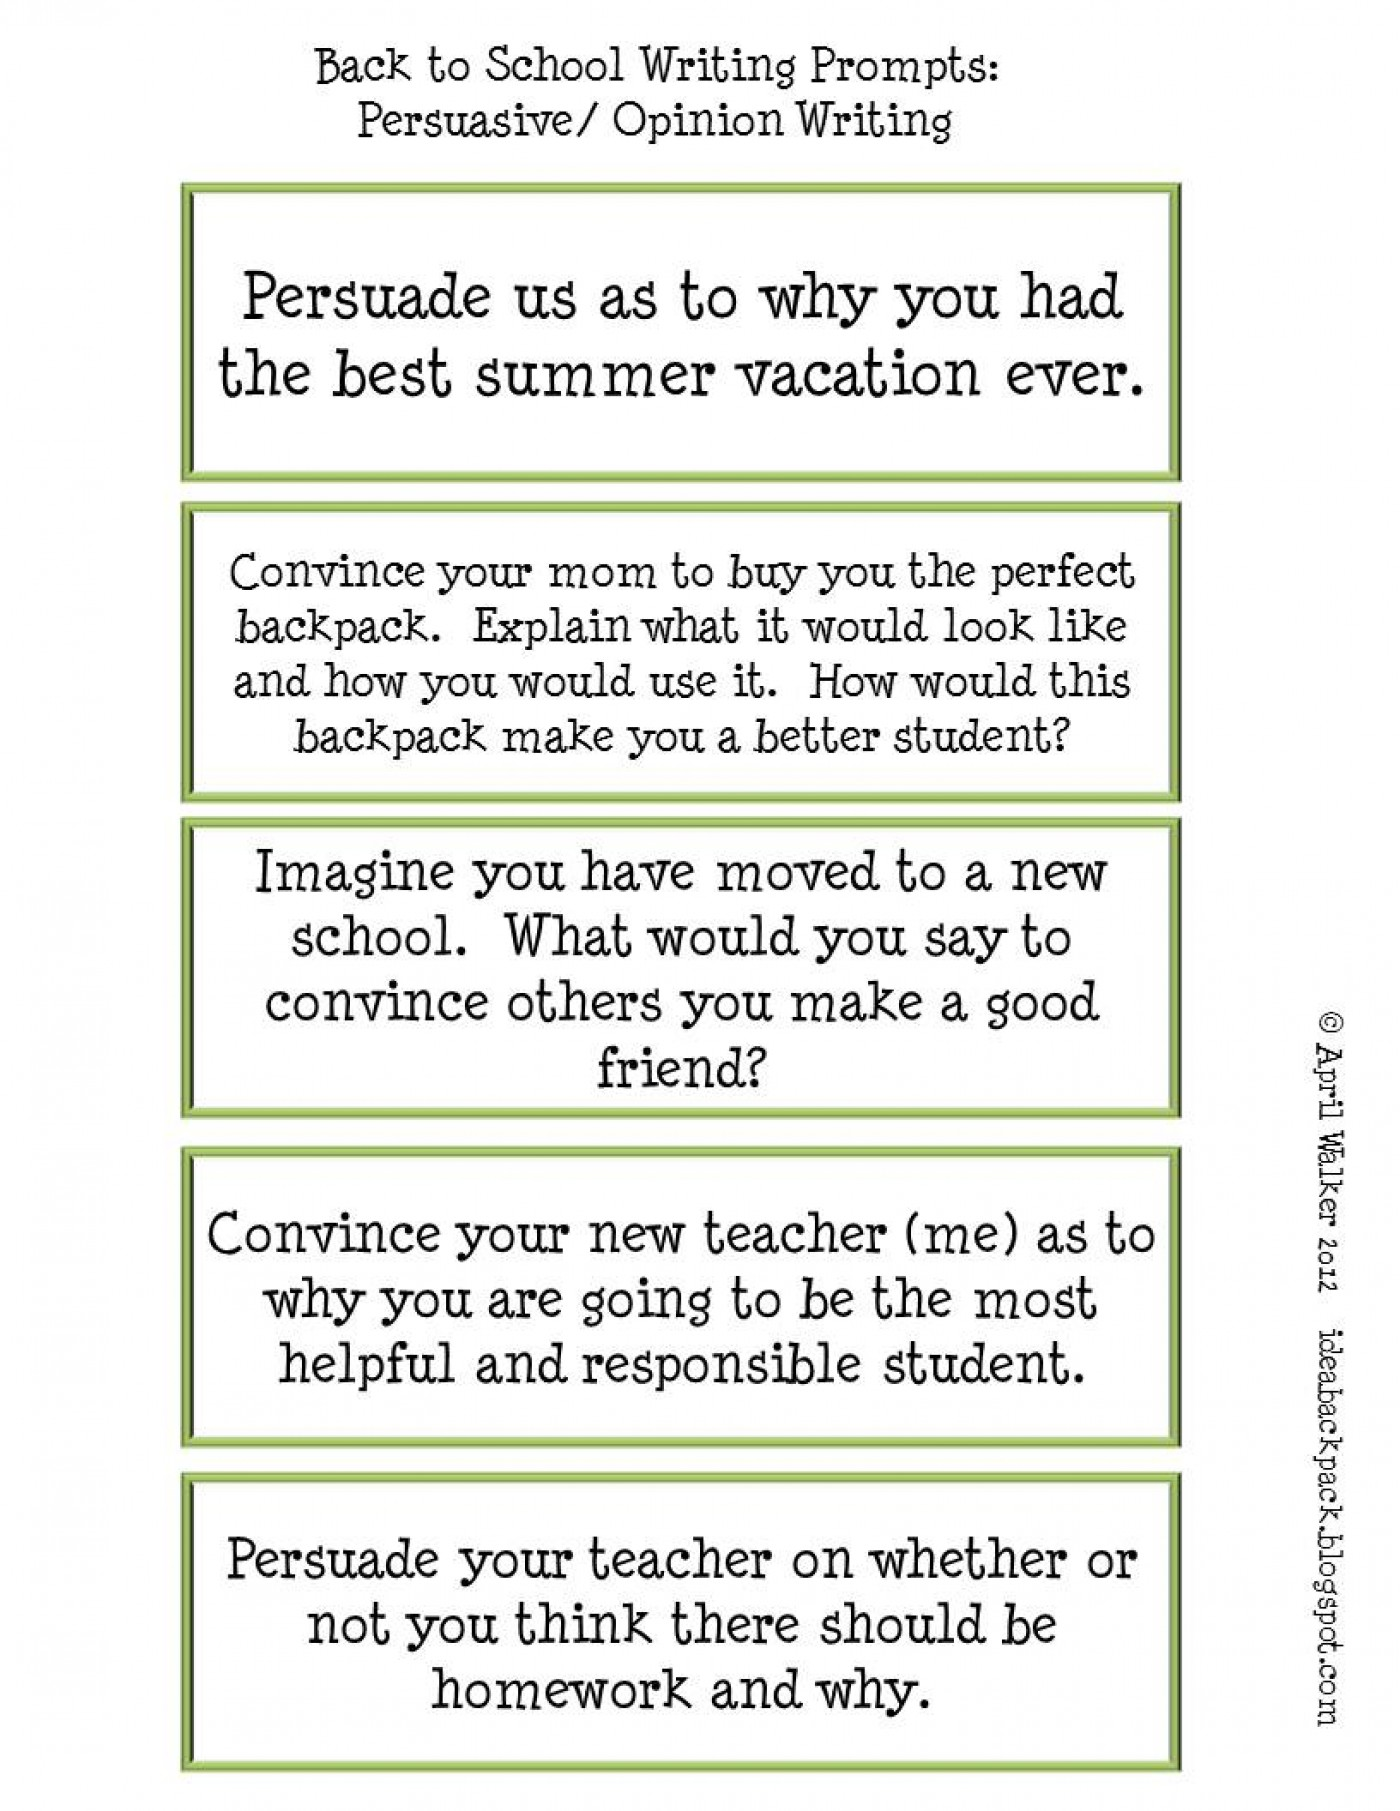 007 Favorite Time Period Expository Writing Prompt Prompts